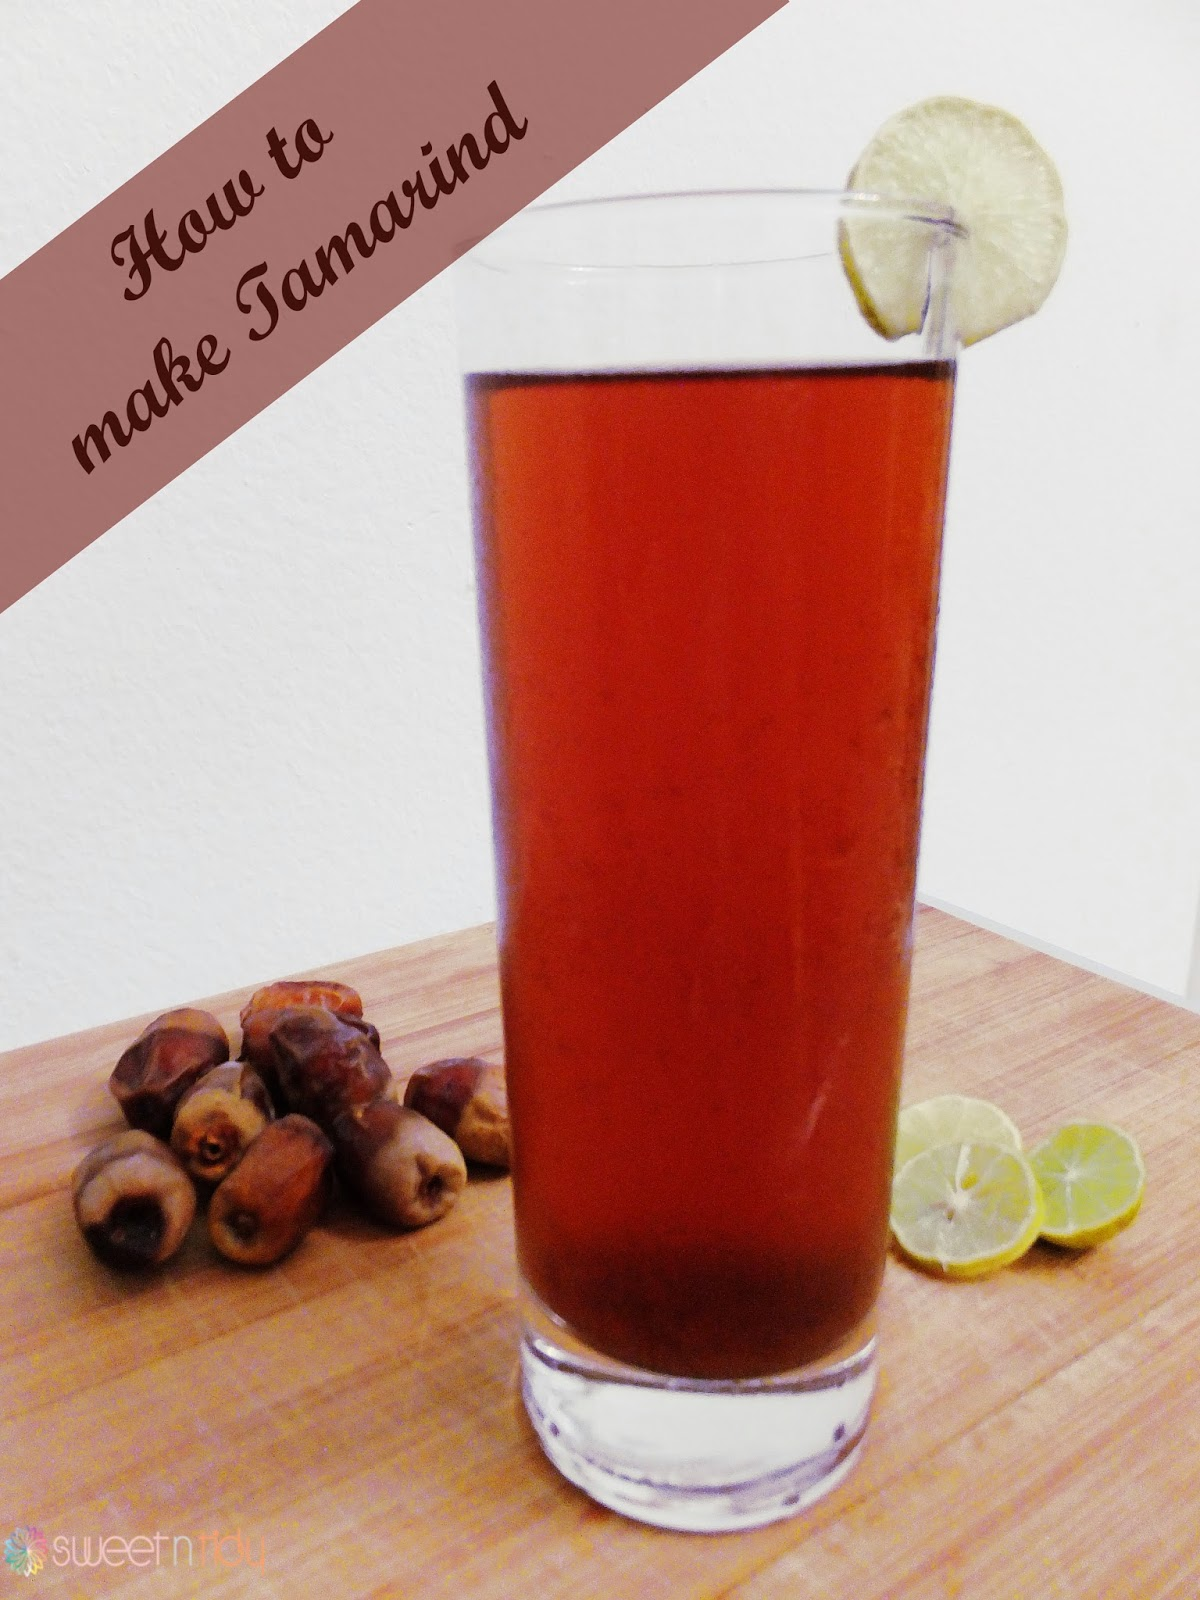 How to make Tamarind juice